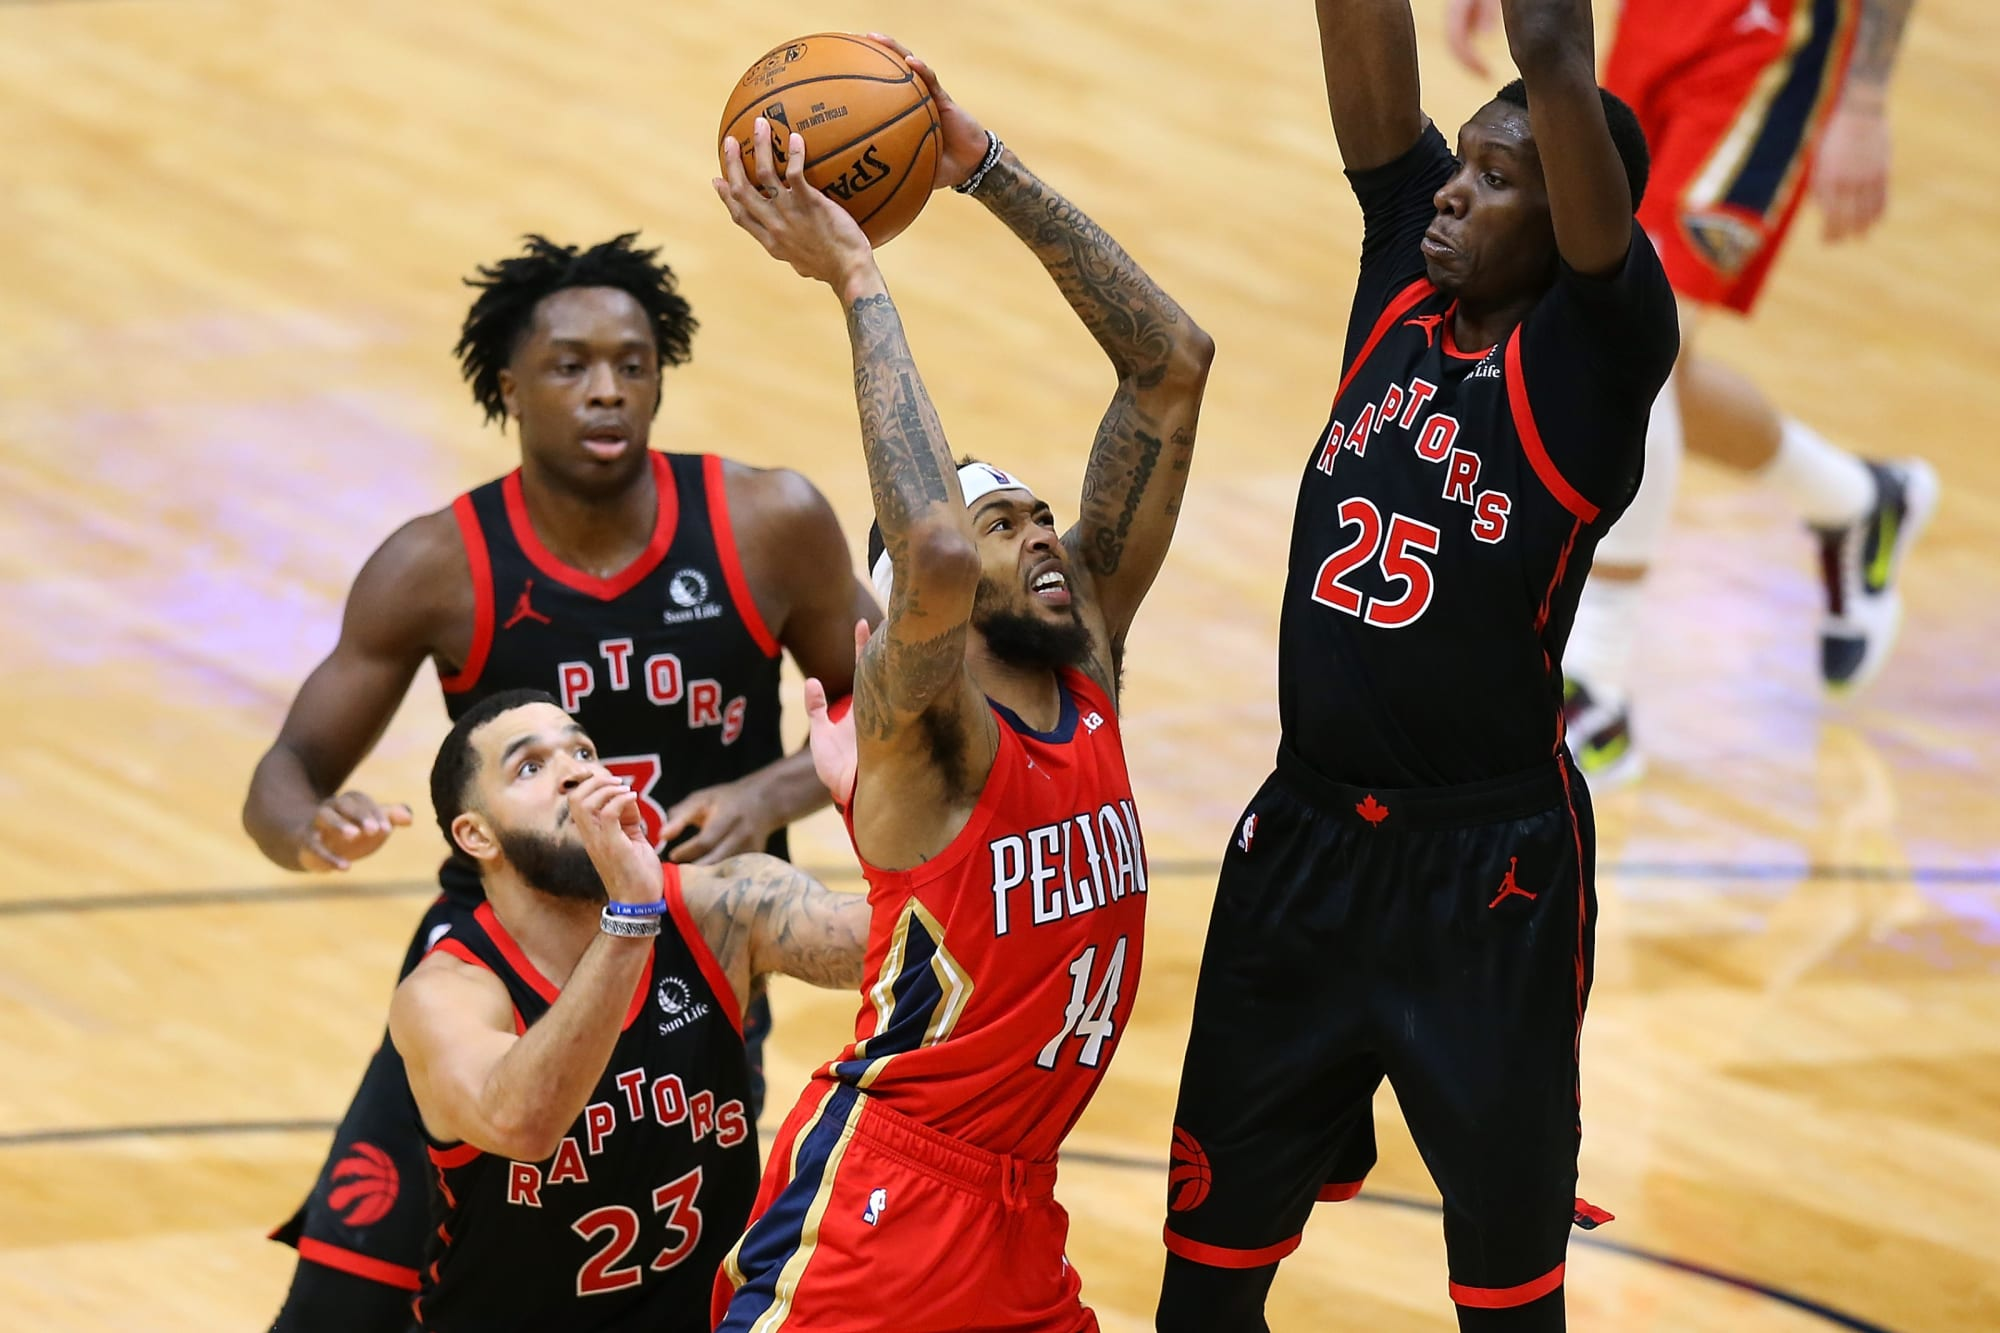 1 right and 4 wrongs with Toronto Raptors after another discouraging week